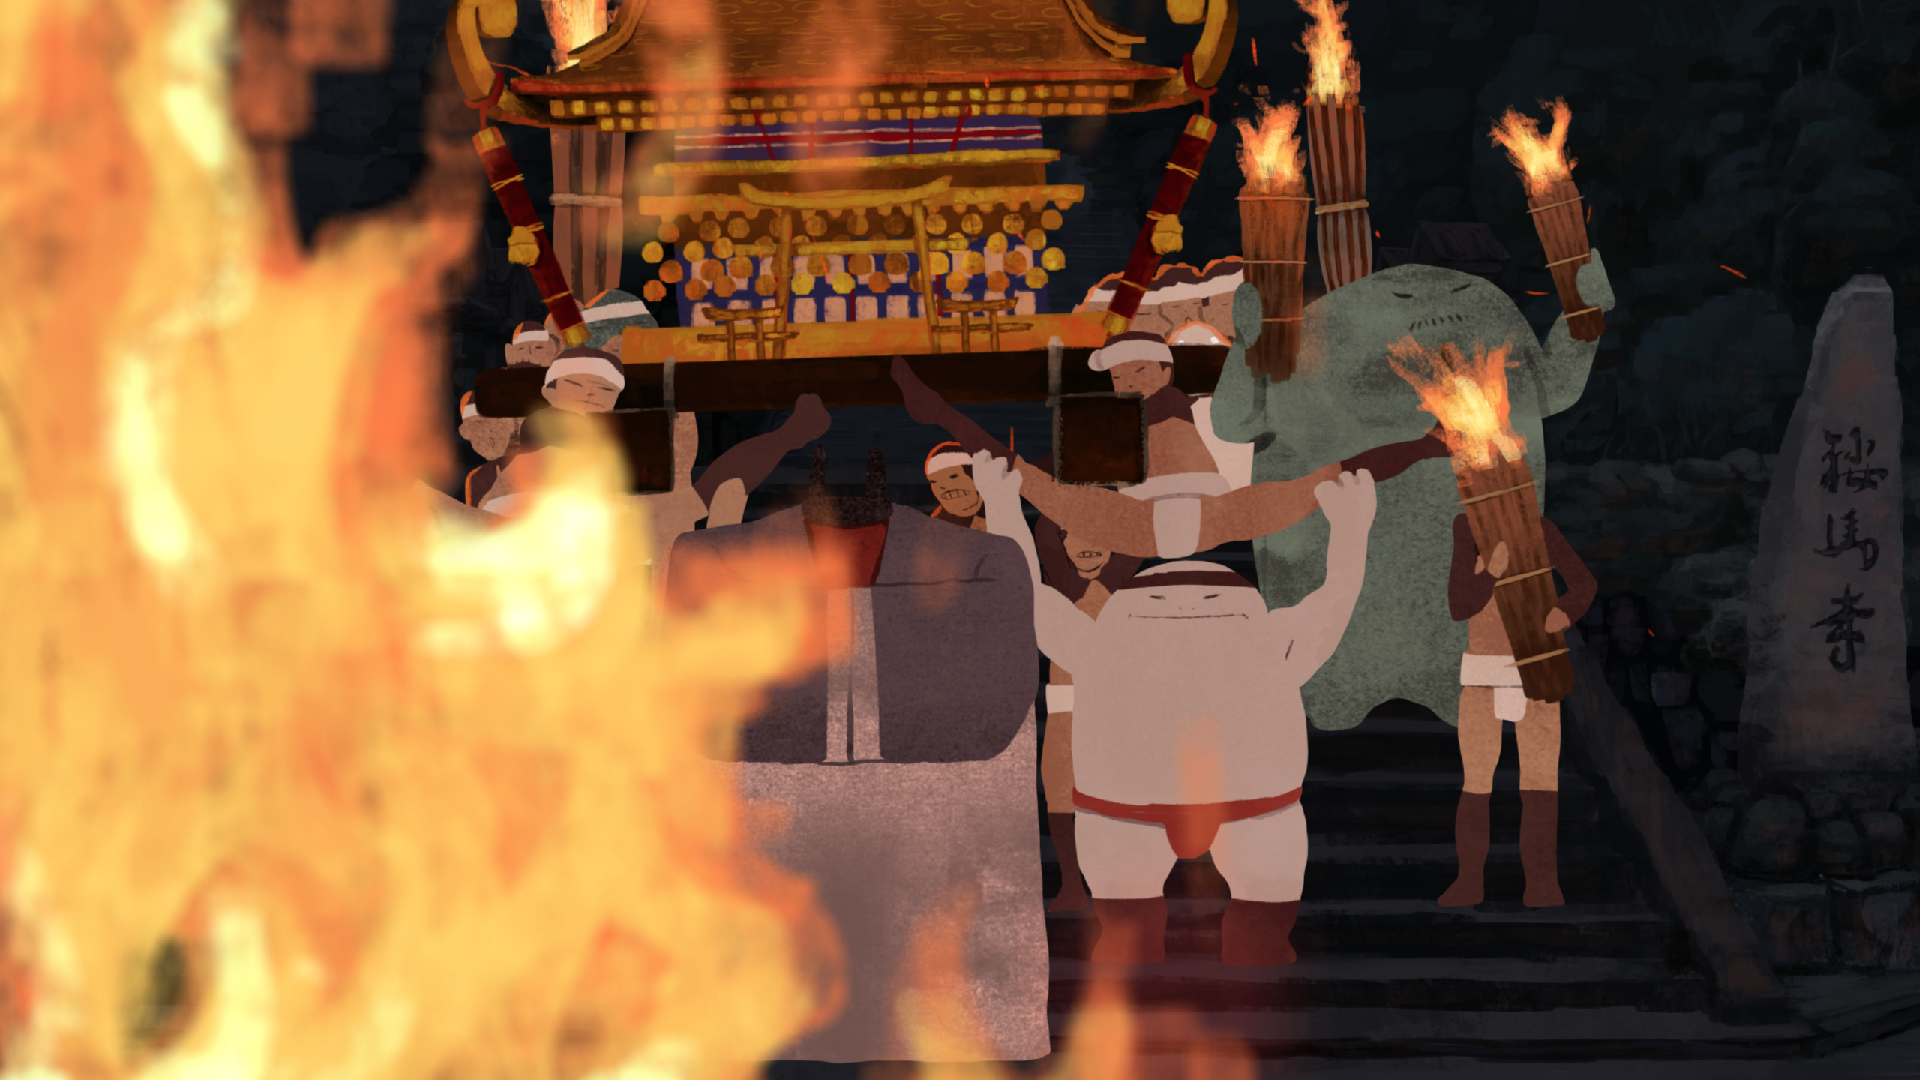 THE FIRE CELEBRATION AT KURAMA